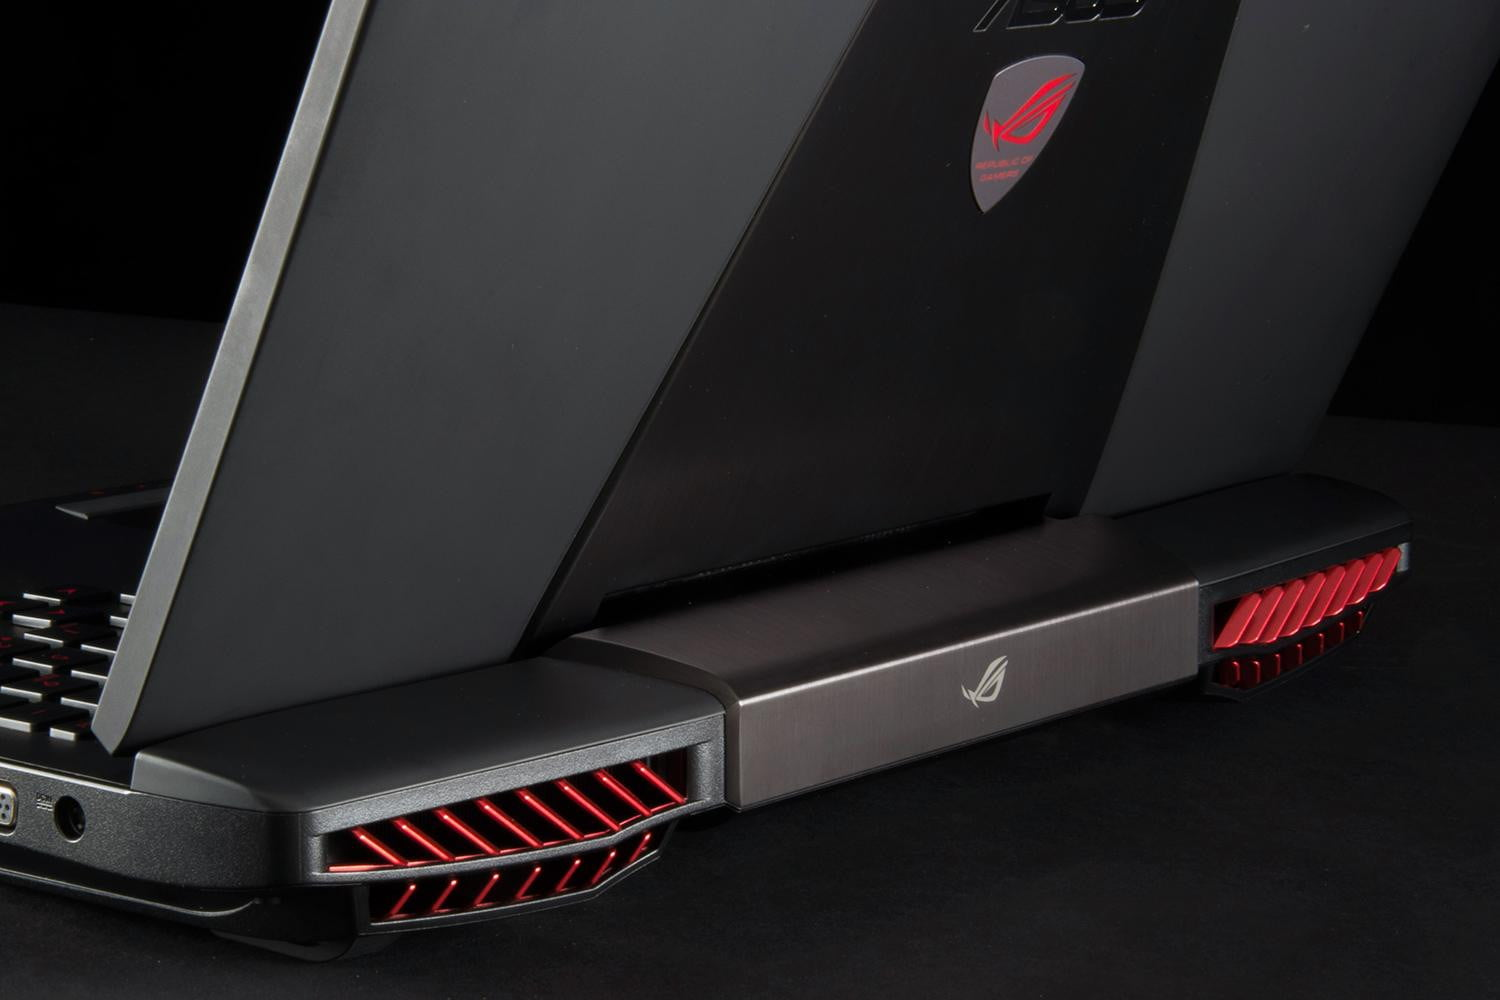 asus-rog-g751jy-dh71-review-rear-vents-1500x1000.jpg (1500×1000)